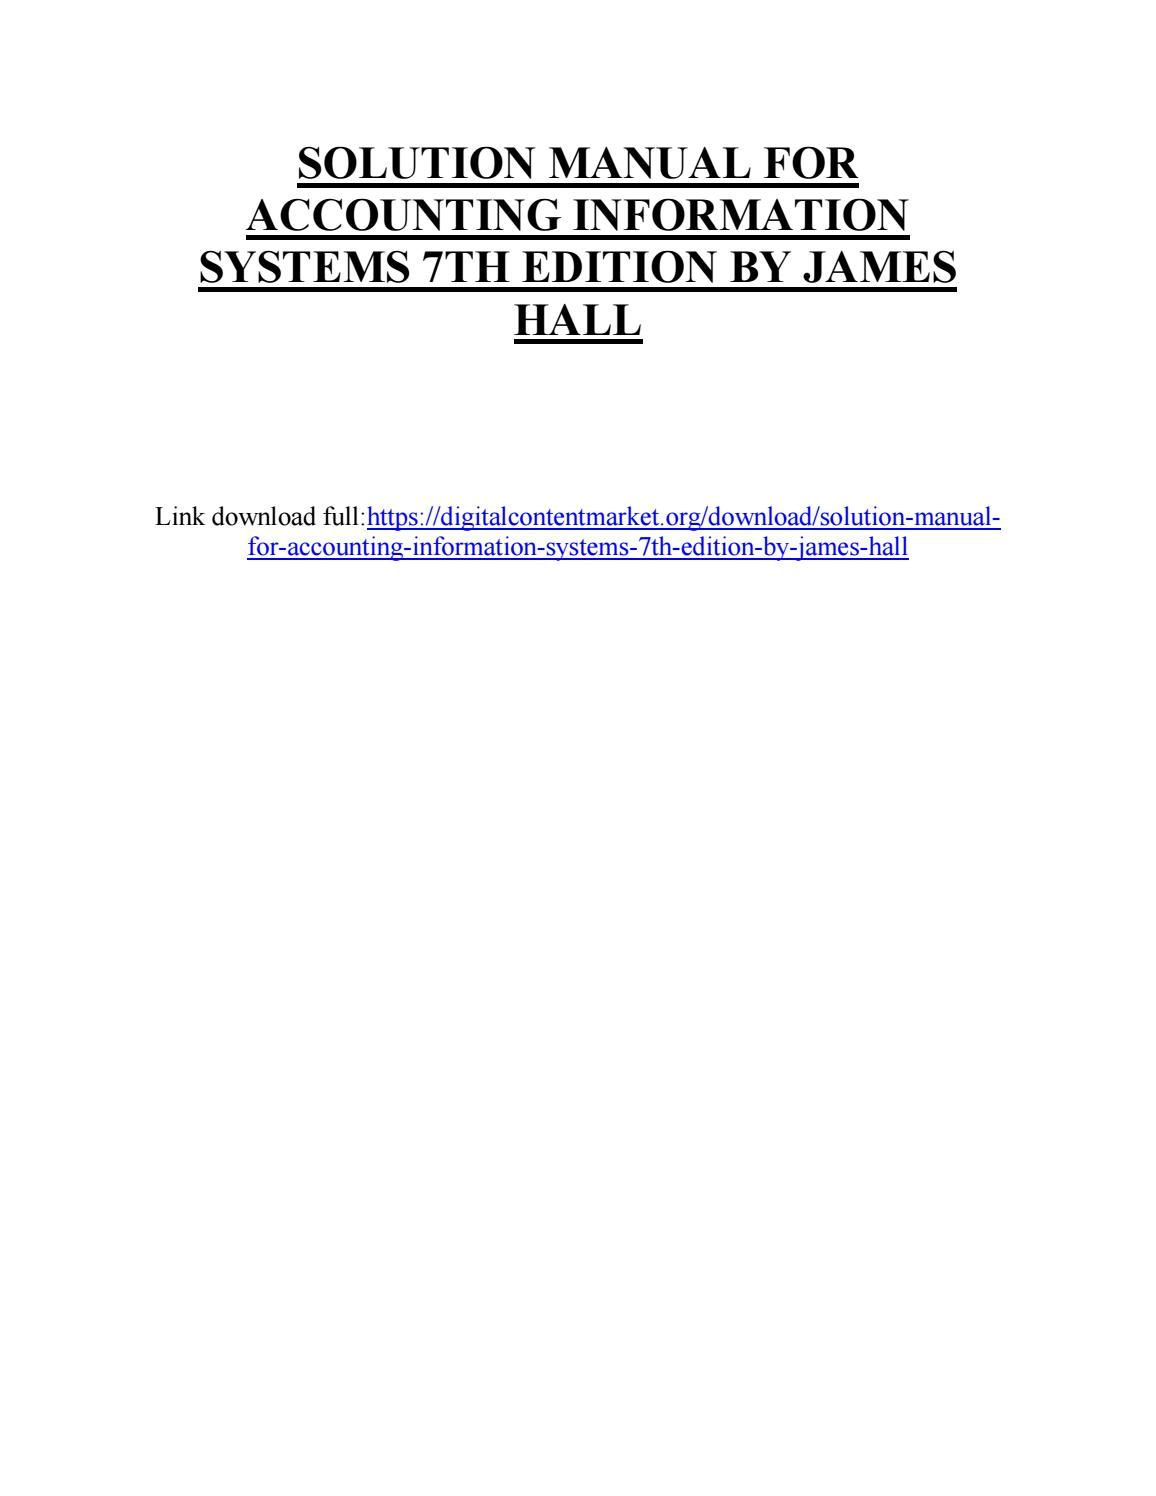 Download solution manual for accounting information systems 7th edition by  james hall